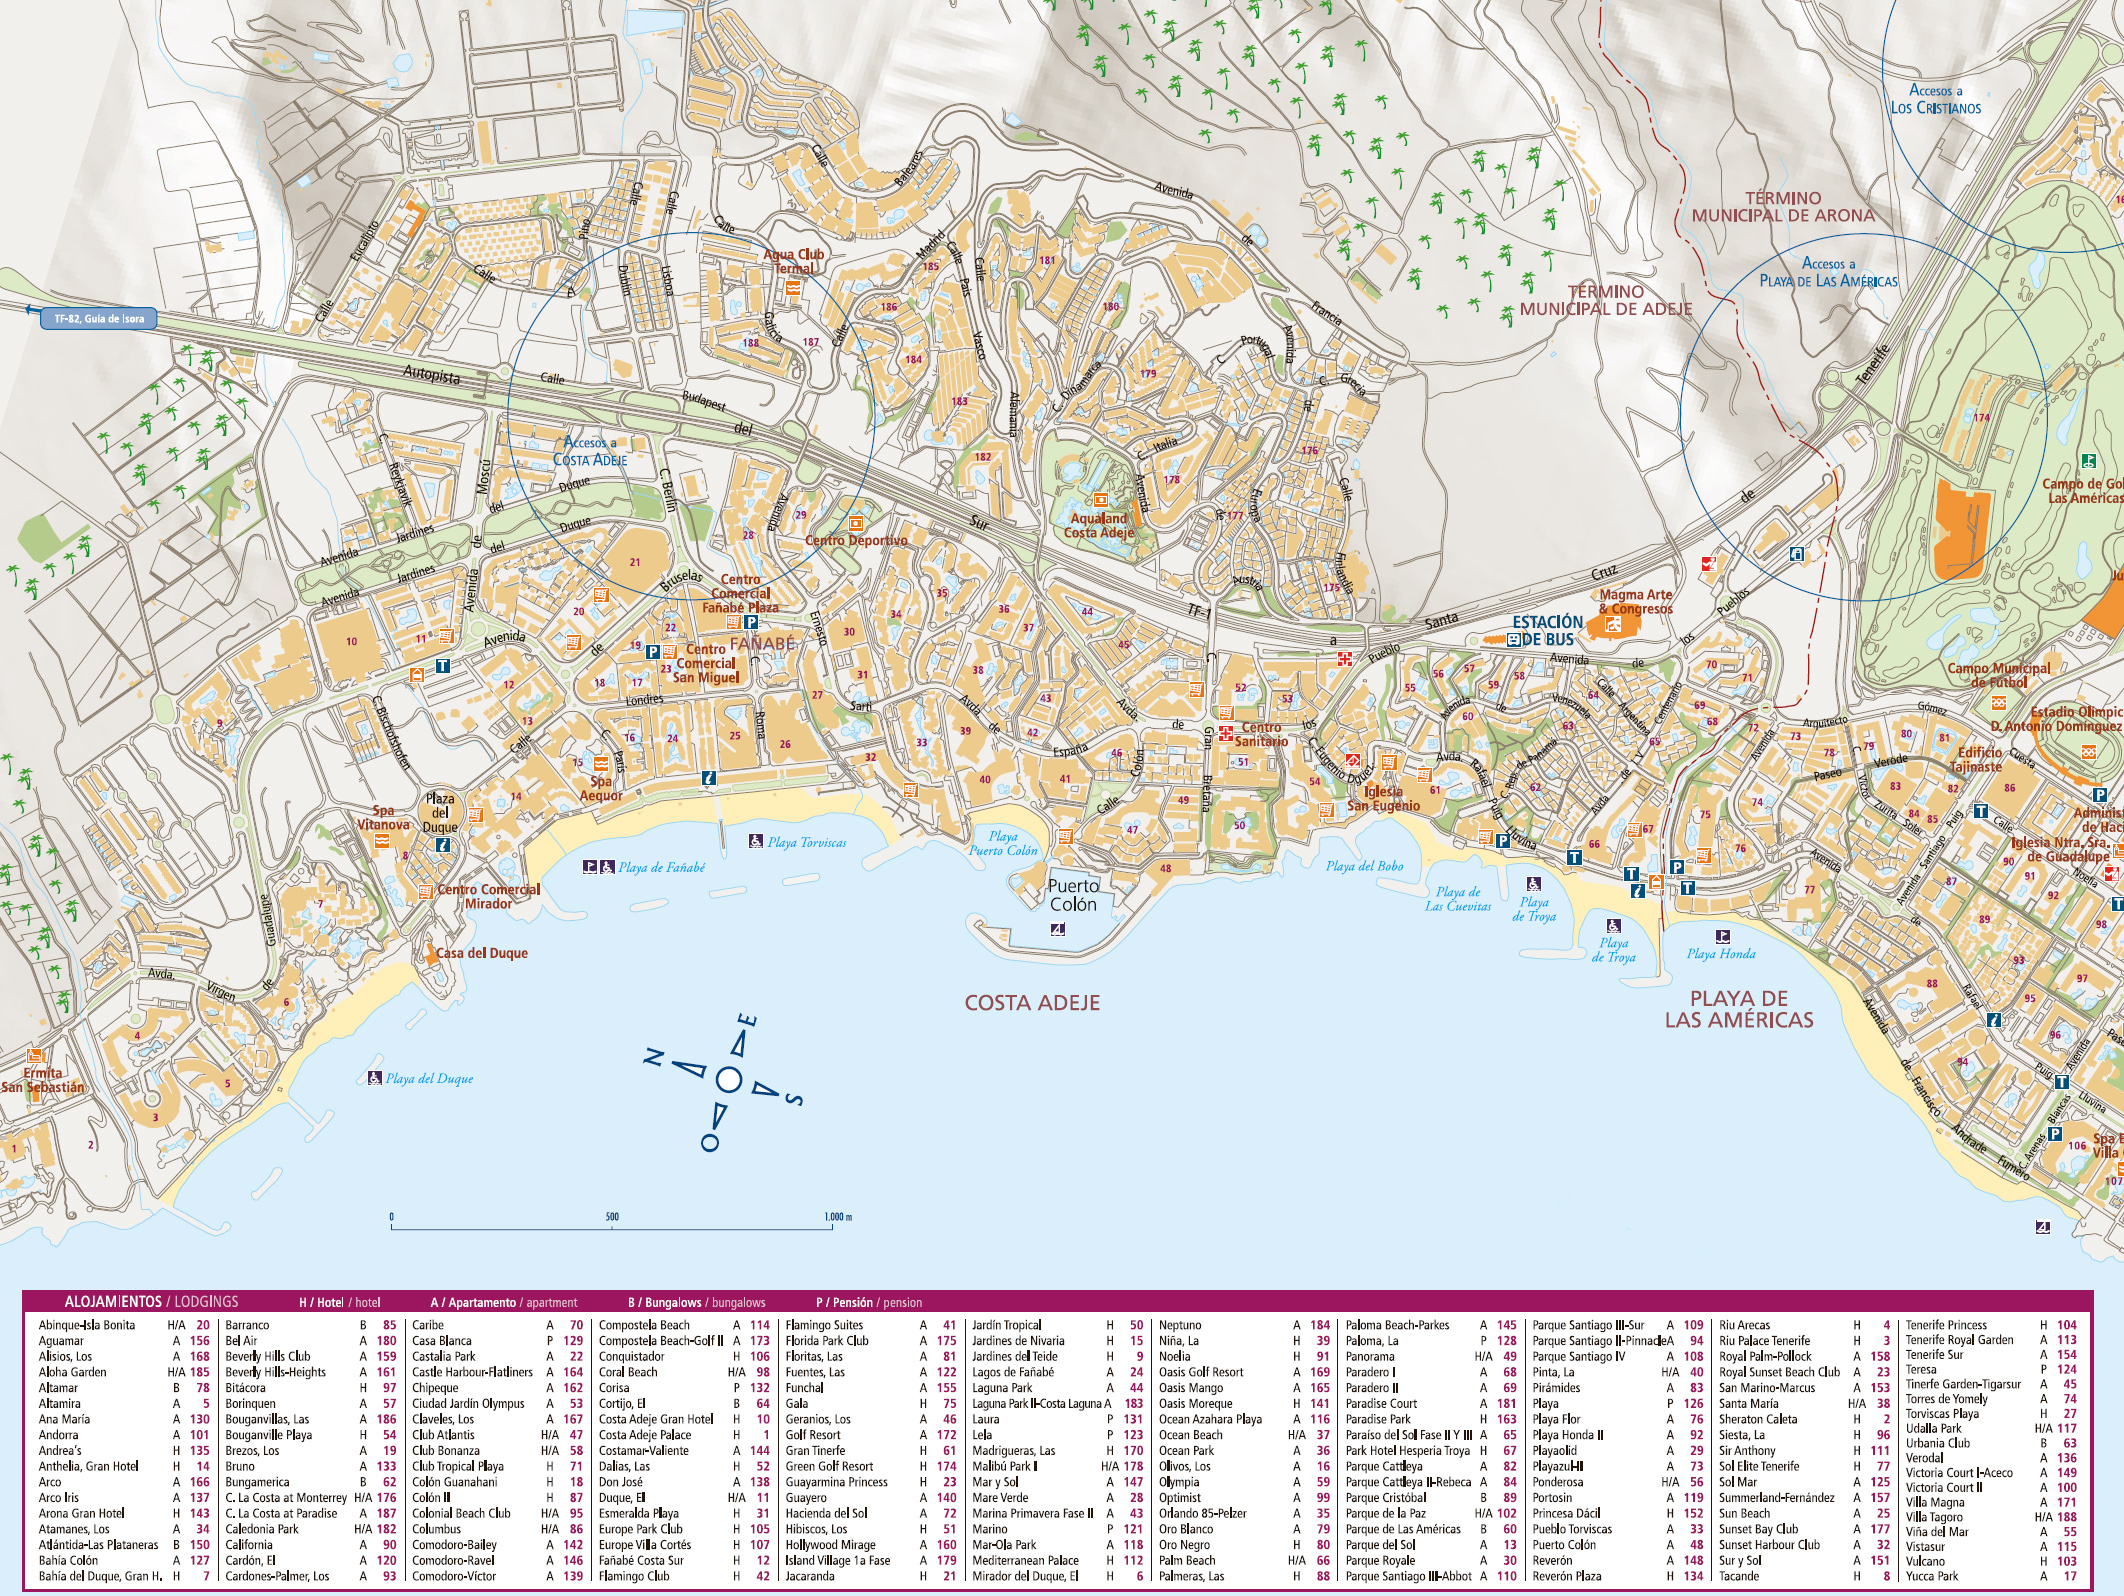 Interactive map of the district of Costa Adeje in Tenerife